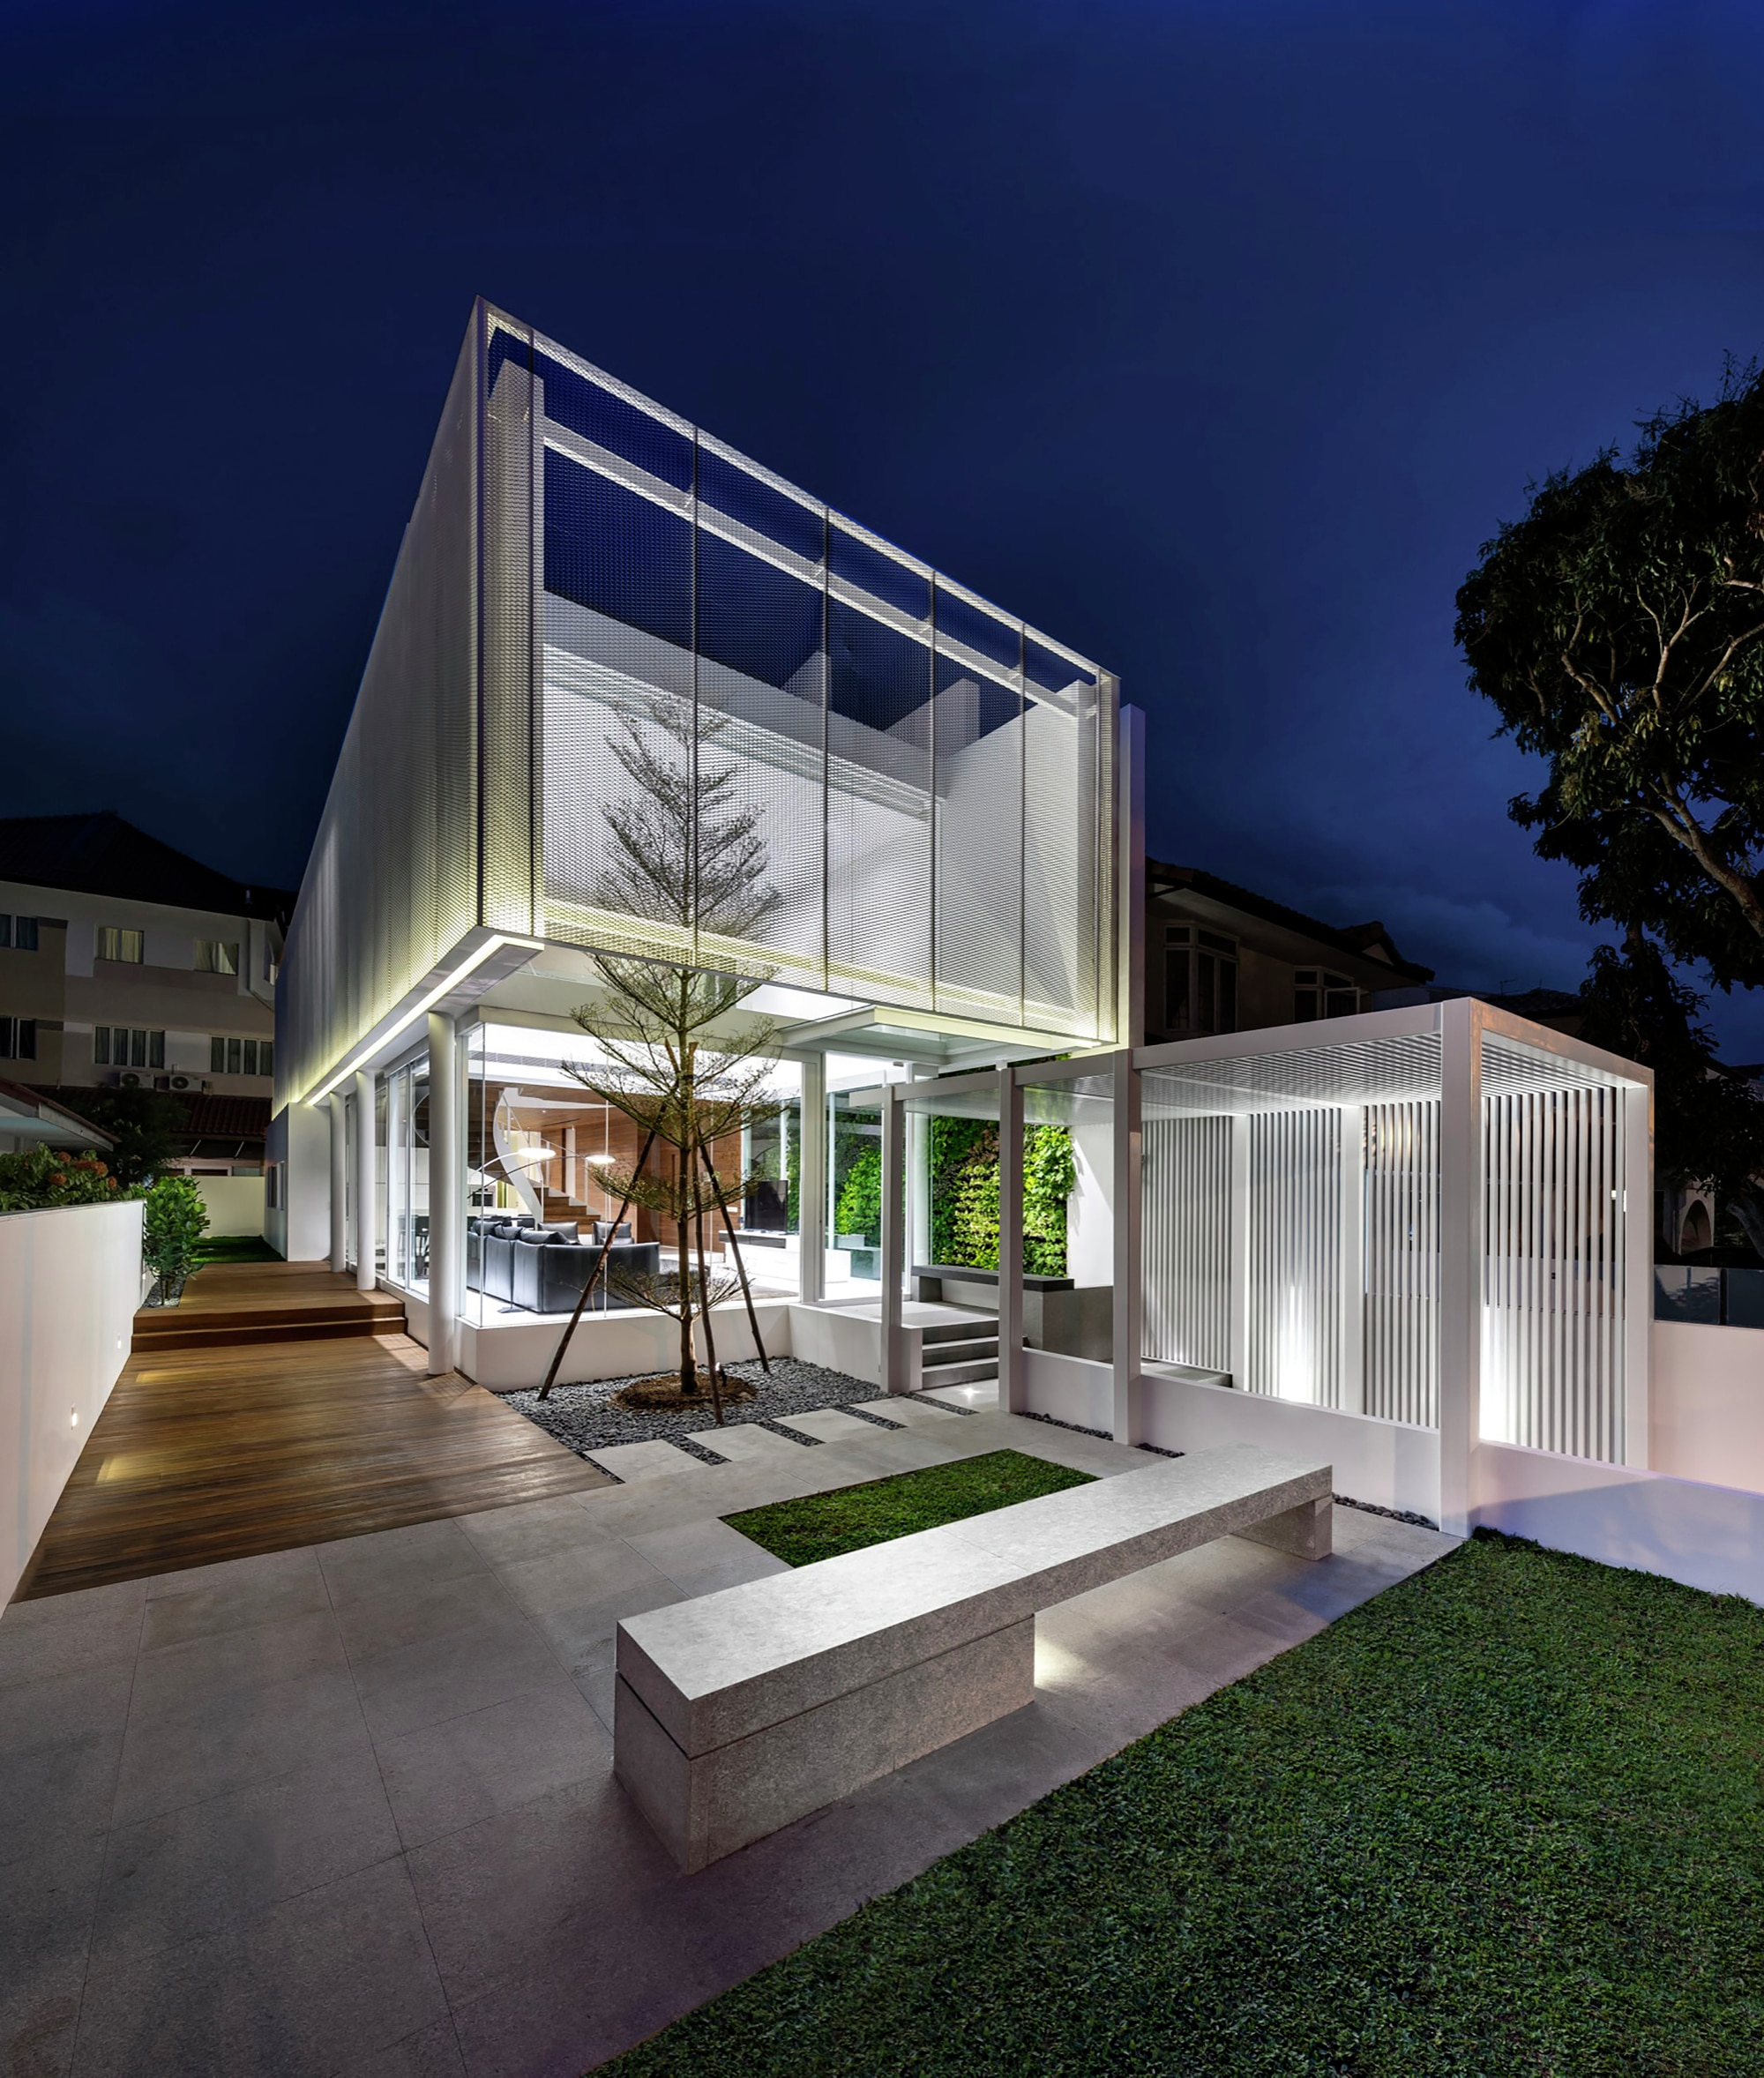 Casa moderna cuatro dormitorios construye hogar - Britains most modern buildings the contemporary design competition ...